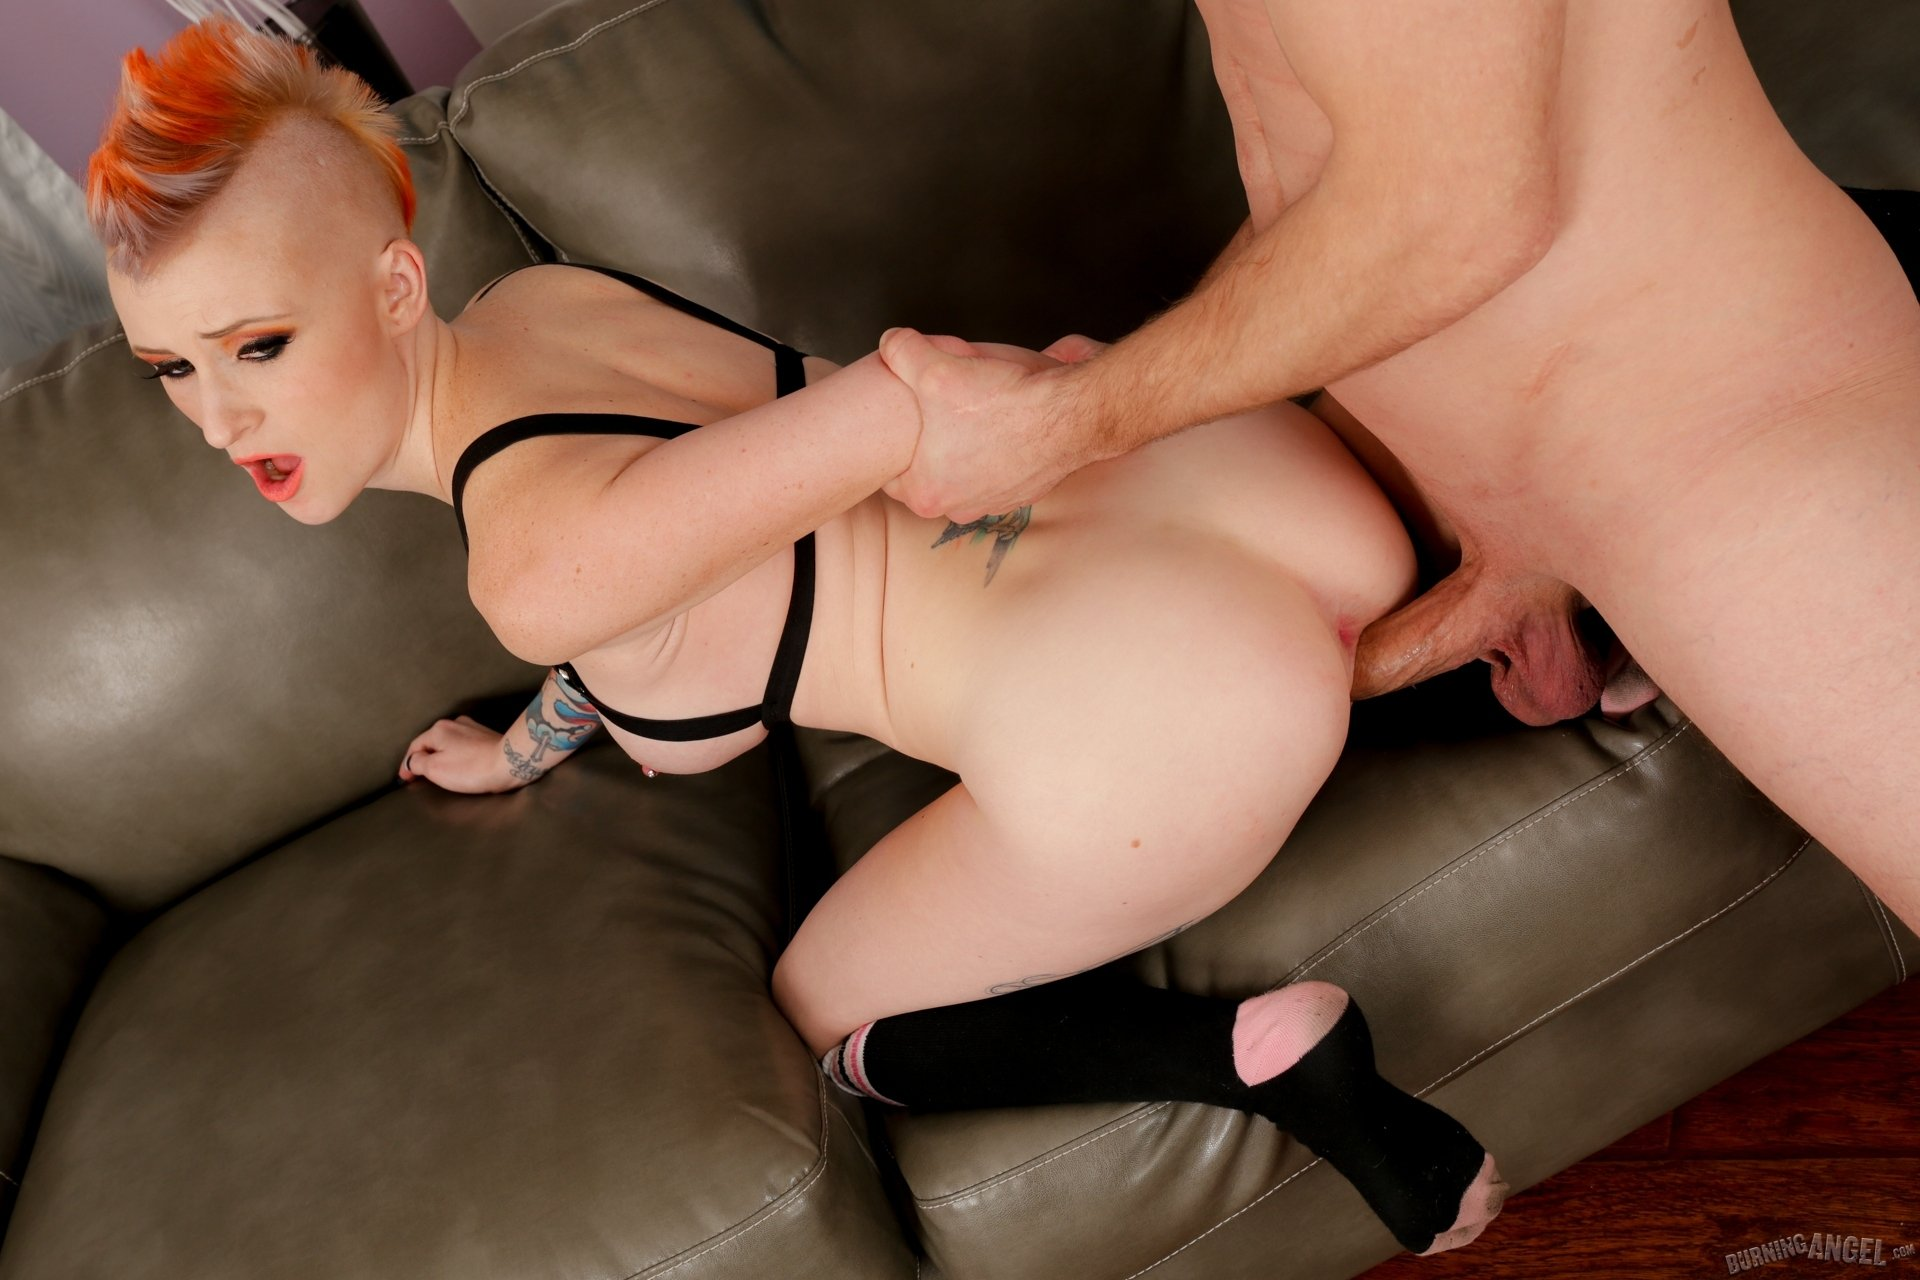 Sexy sex sites Mp44065ssy winters forces cuckold to watch her takes bbc